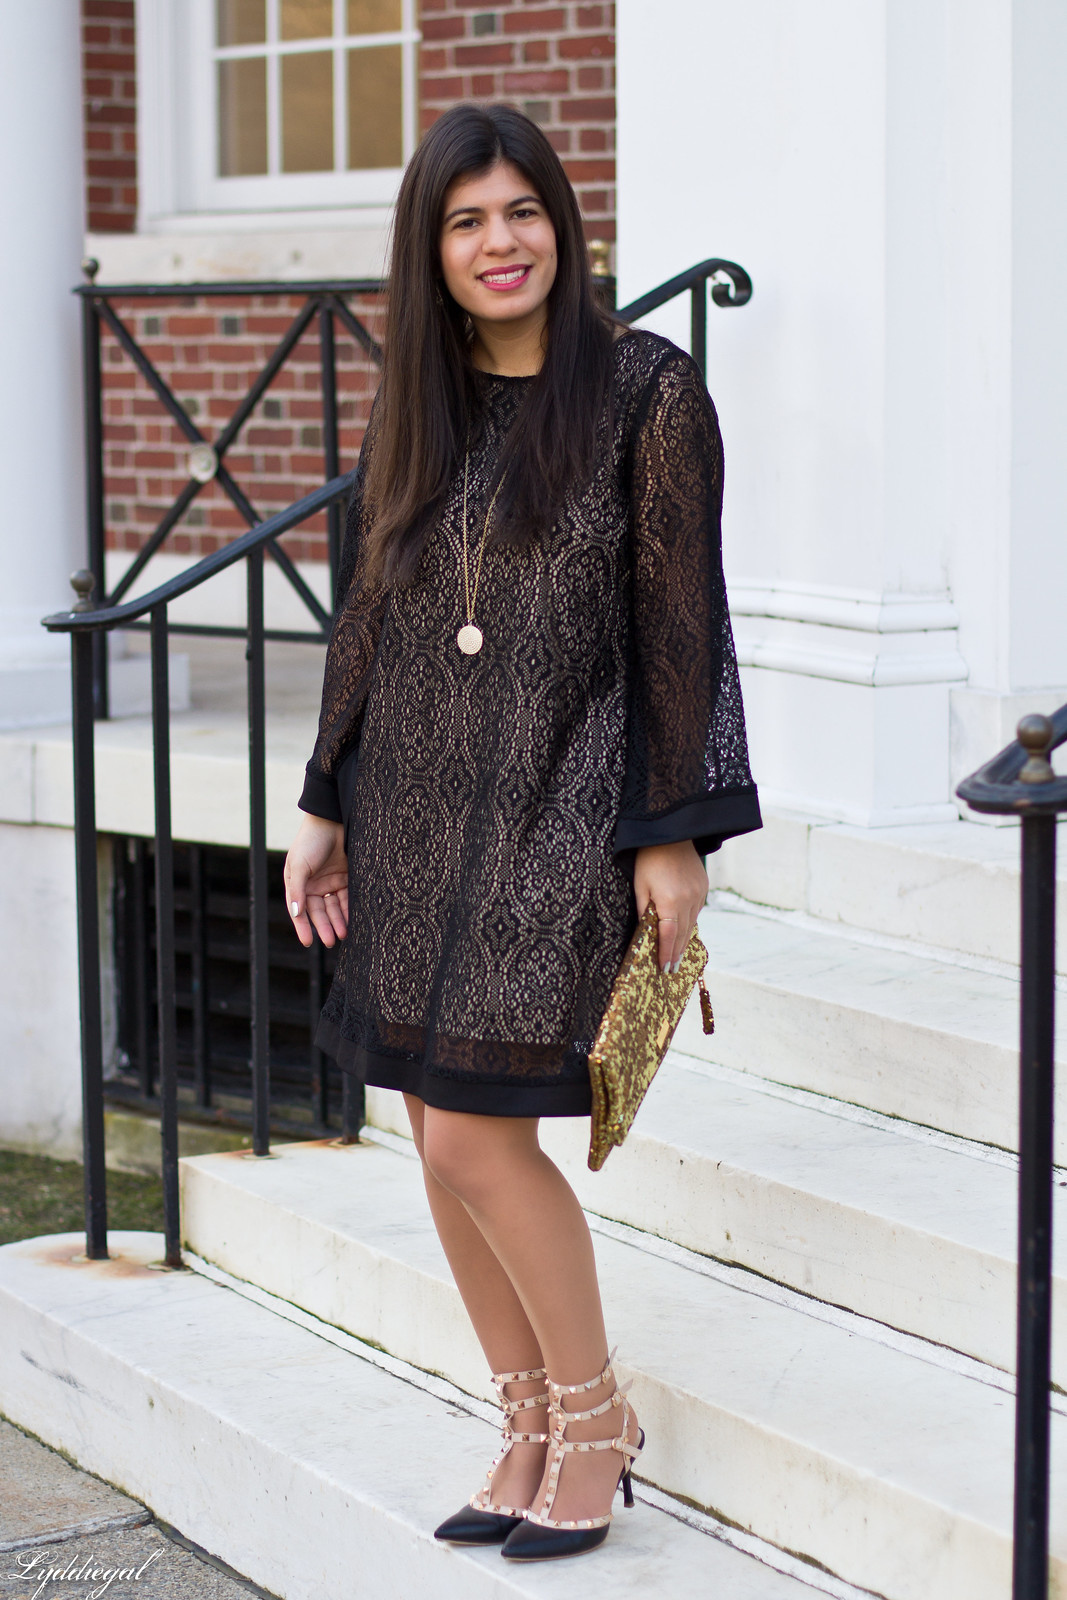 black lace dress, gold sequin clutch, studded pumps-1.jpg